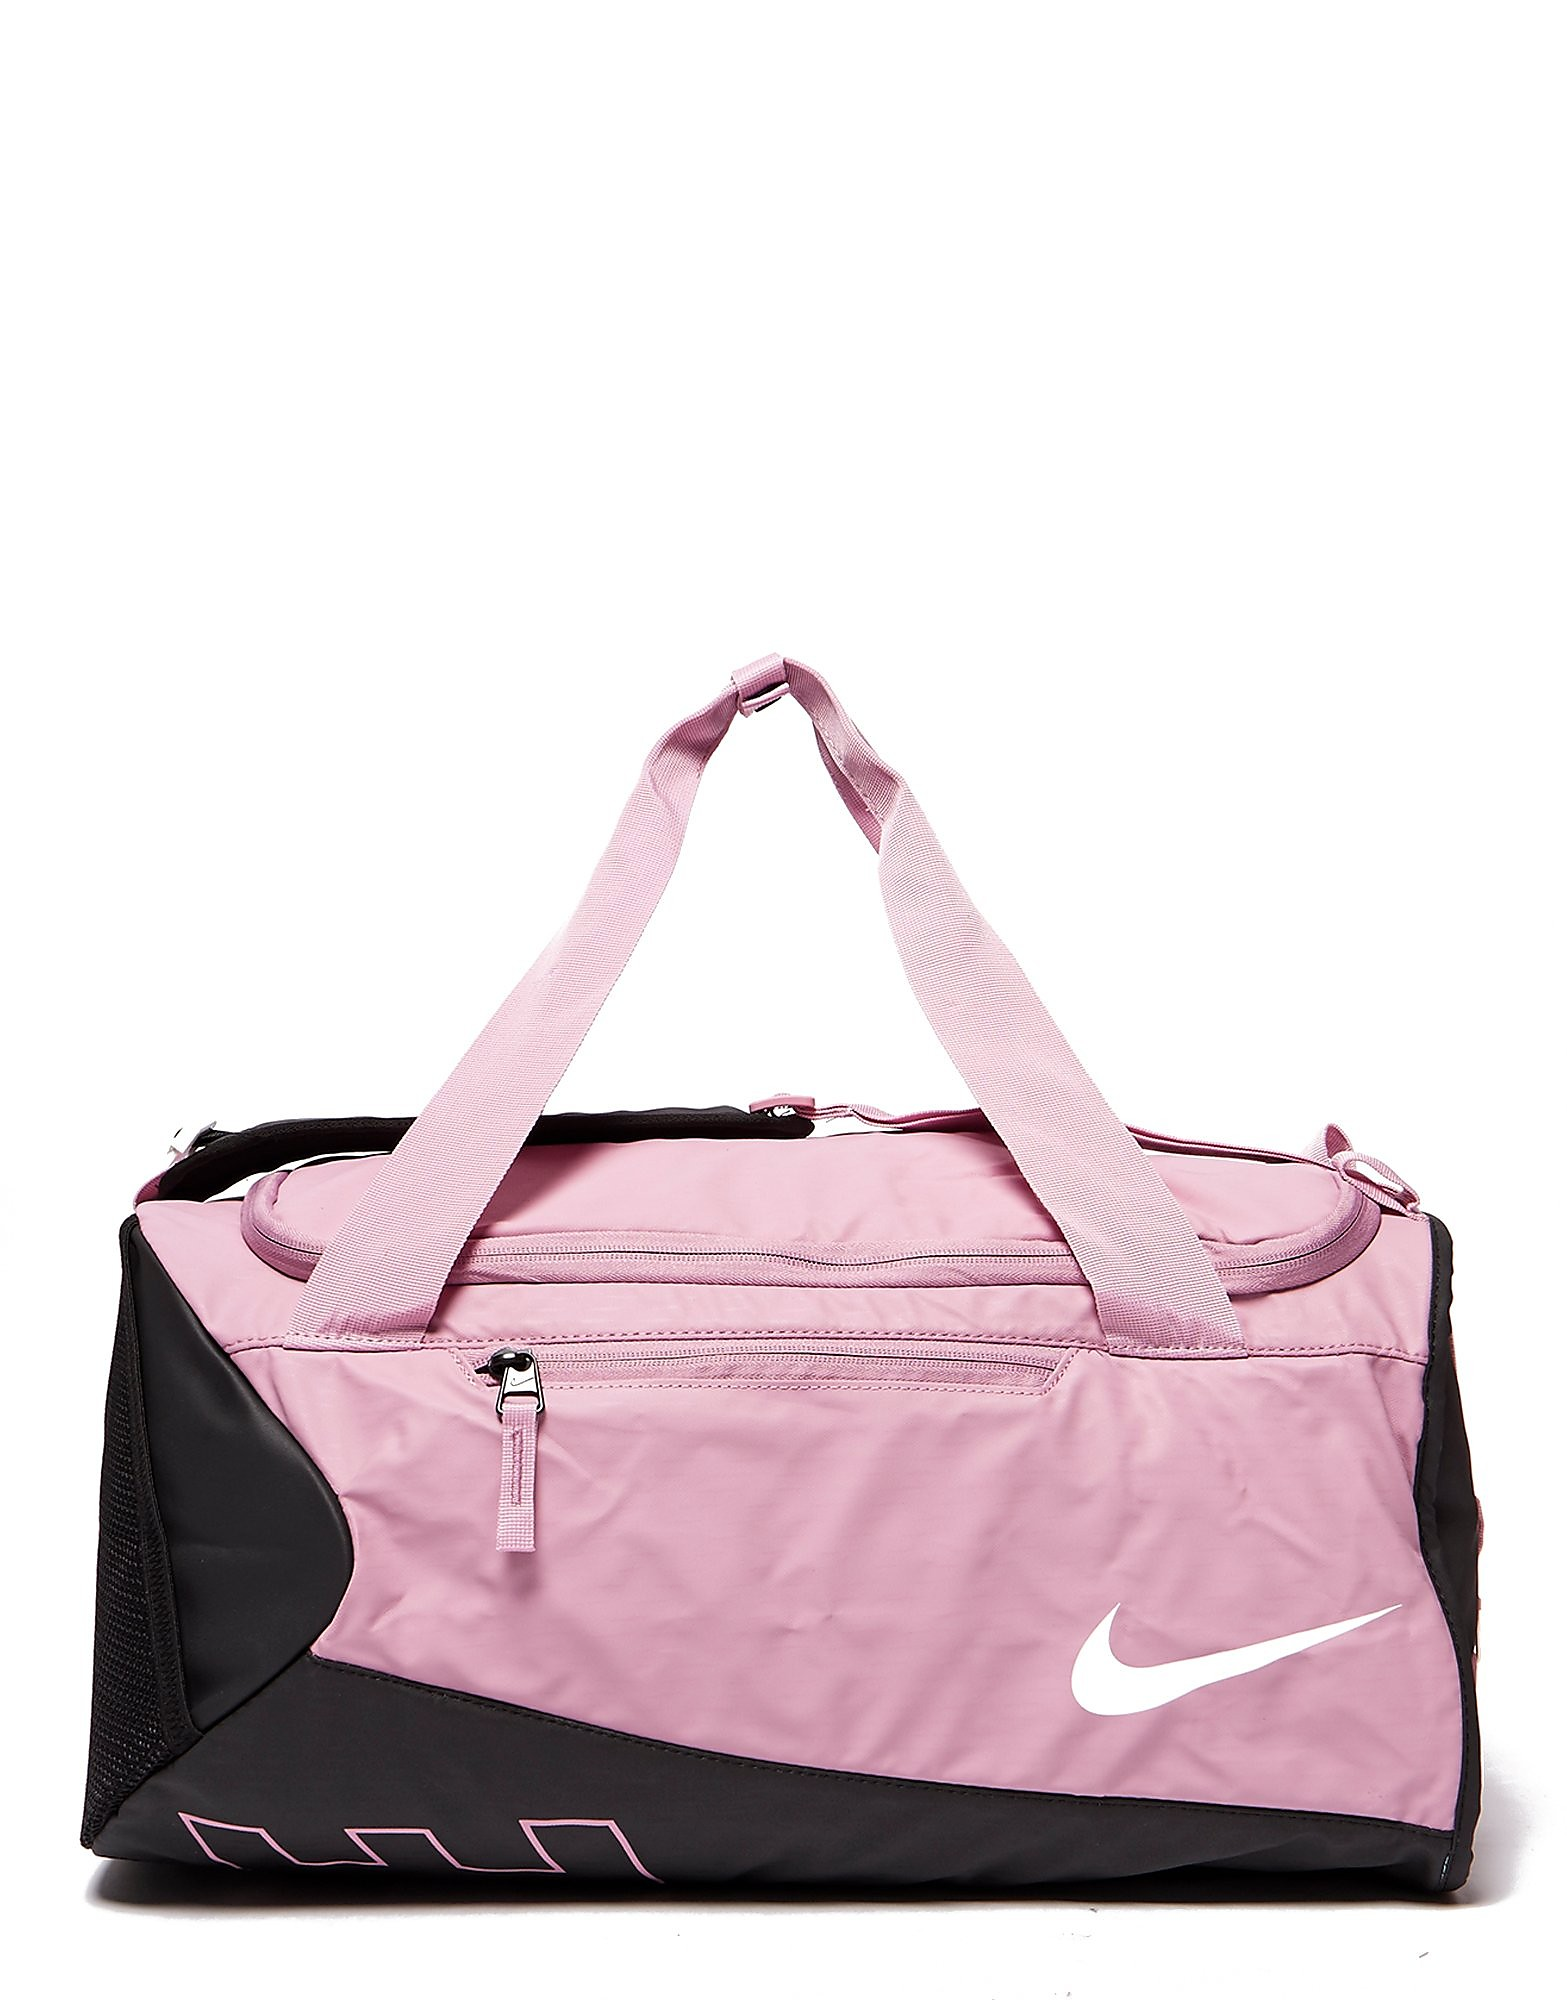 Nike Alpha Duffle Bag